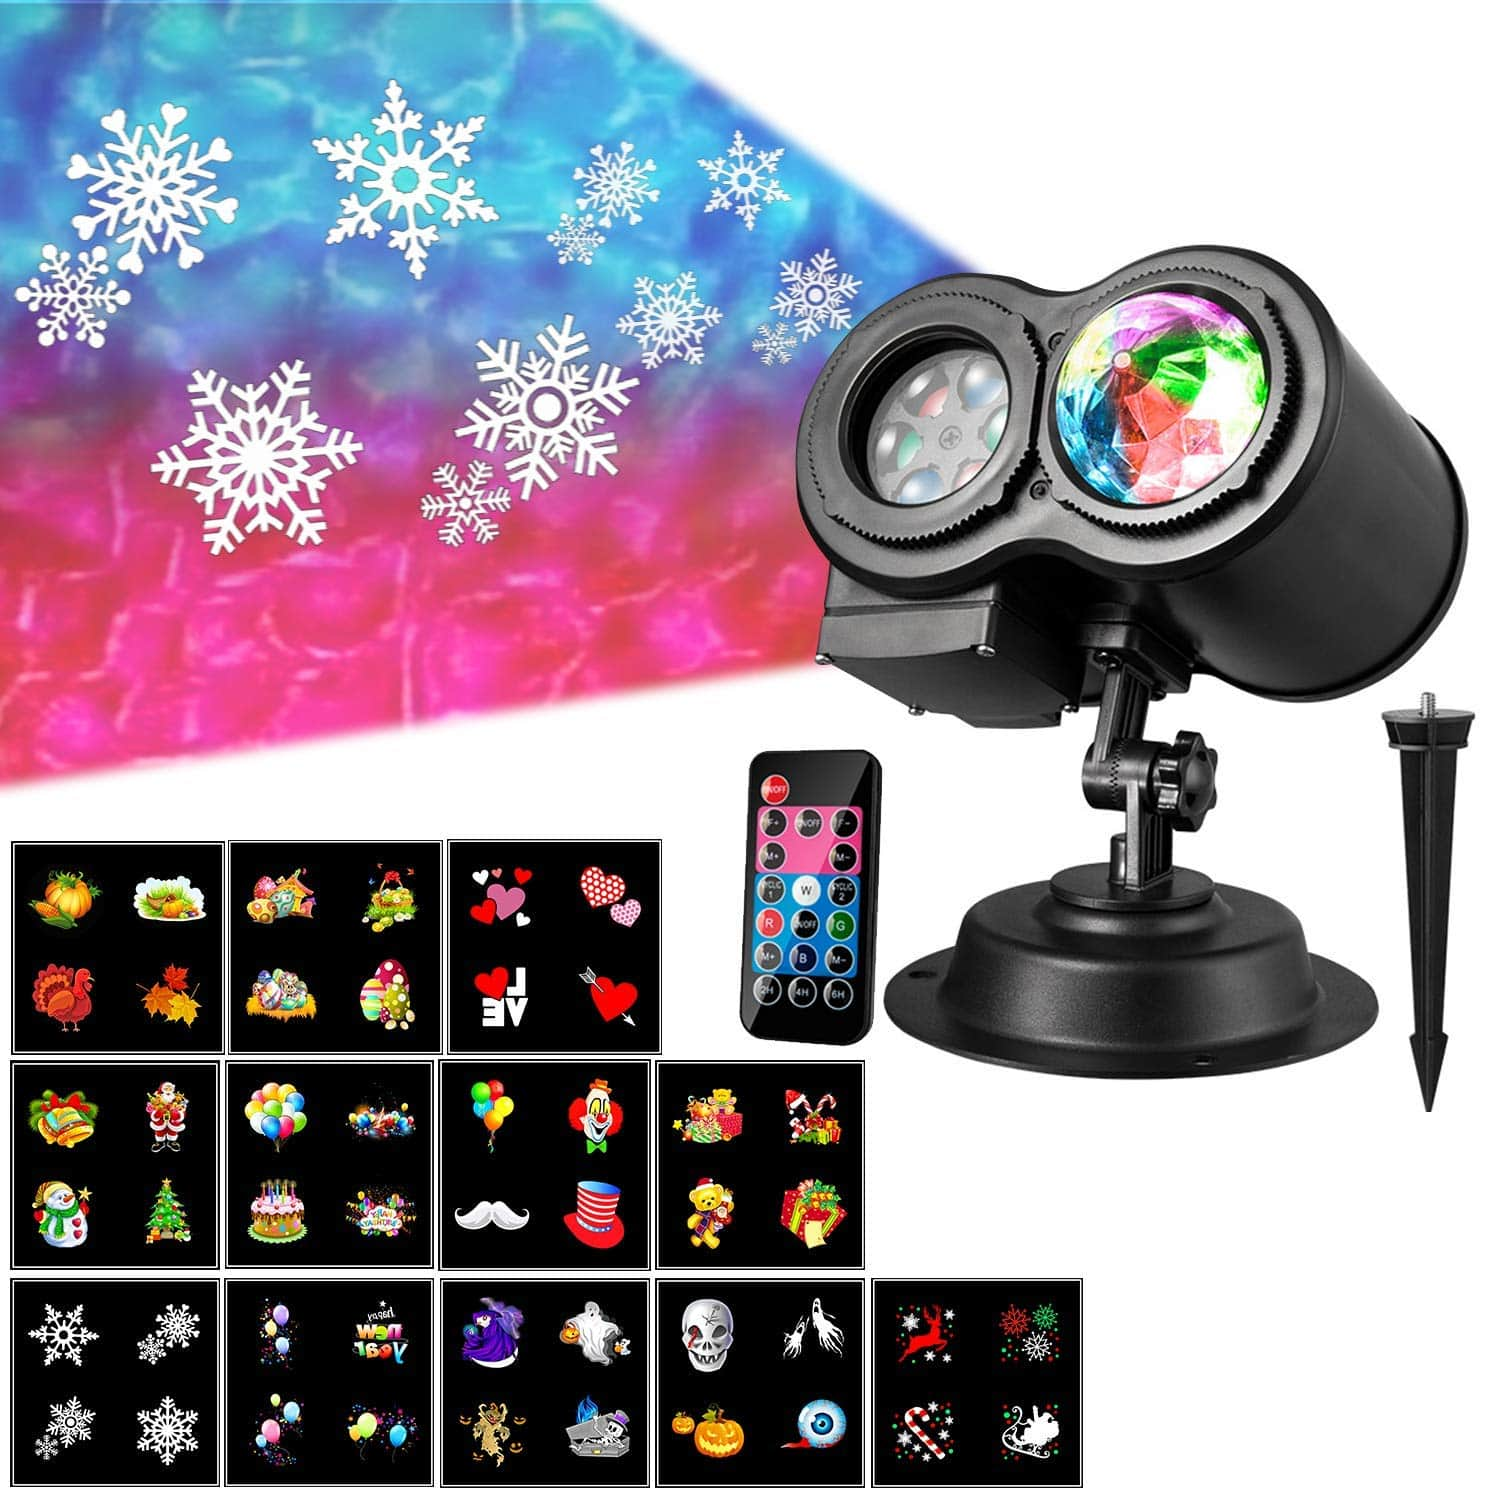 Christmas Projector Lights with 12 Slides Moving Pattern 2 in 1 Outdoor $22.54